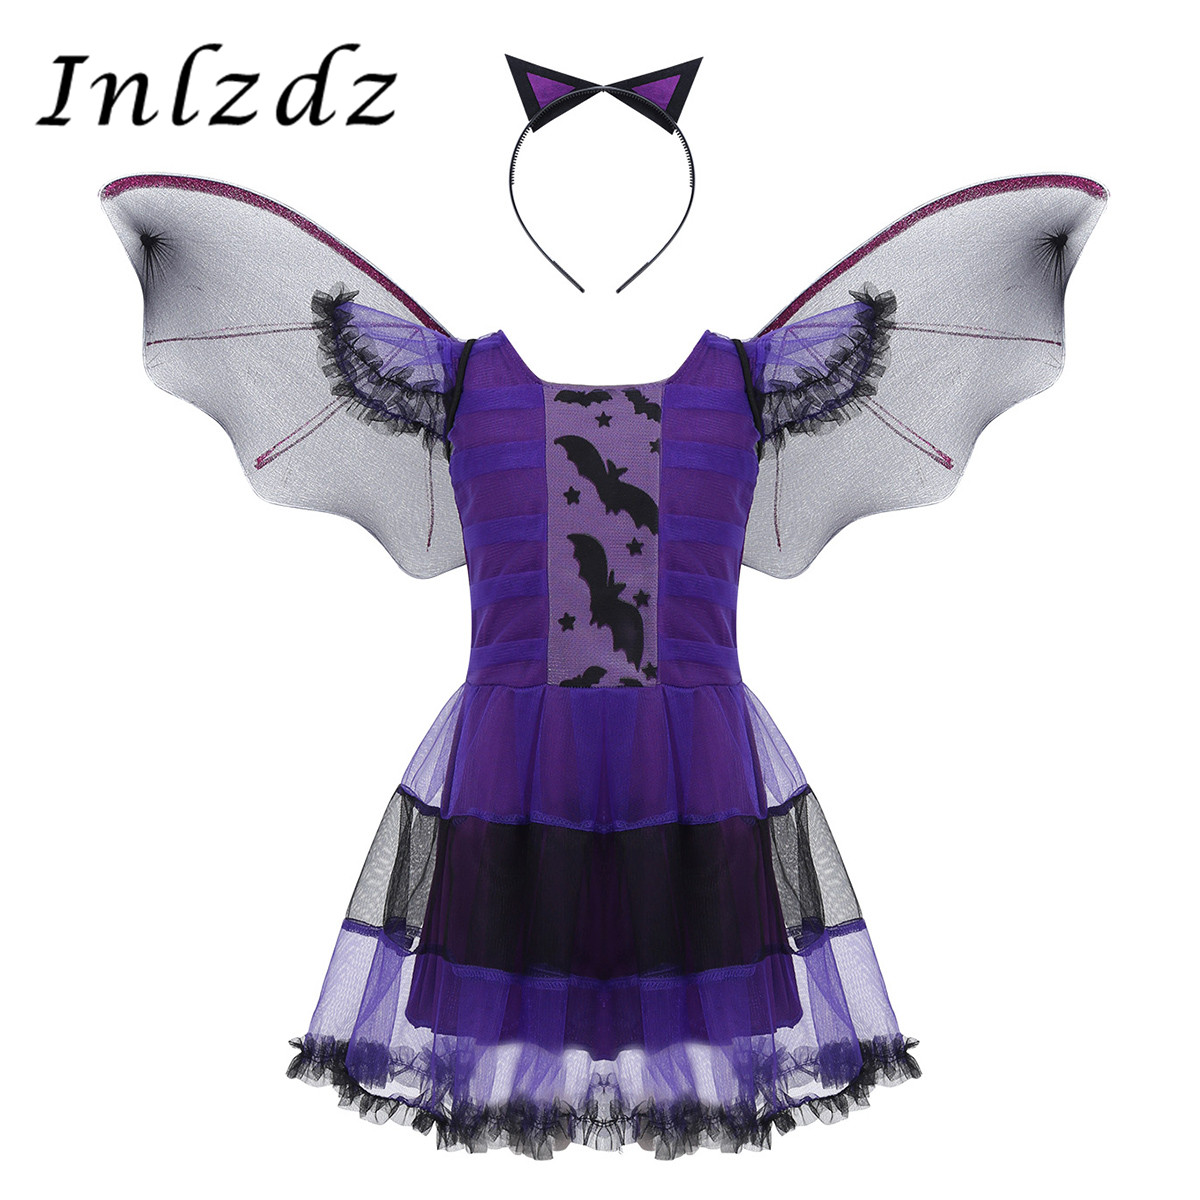 Kids Girls Fancy Cosplay Costume Purple Bat Vampire Princess Dress Witch Clothes With Wing Headband Halloween Role Play Clothing